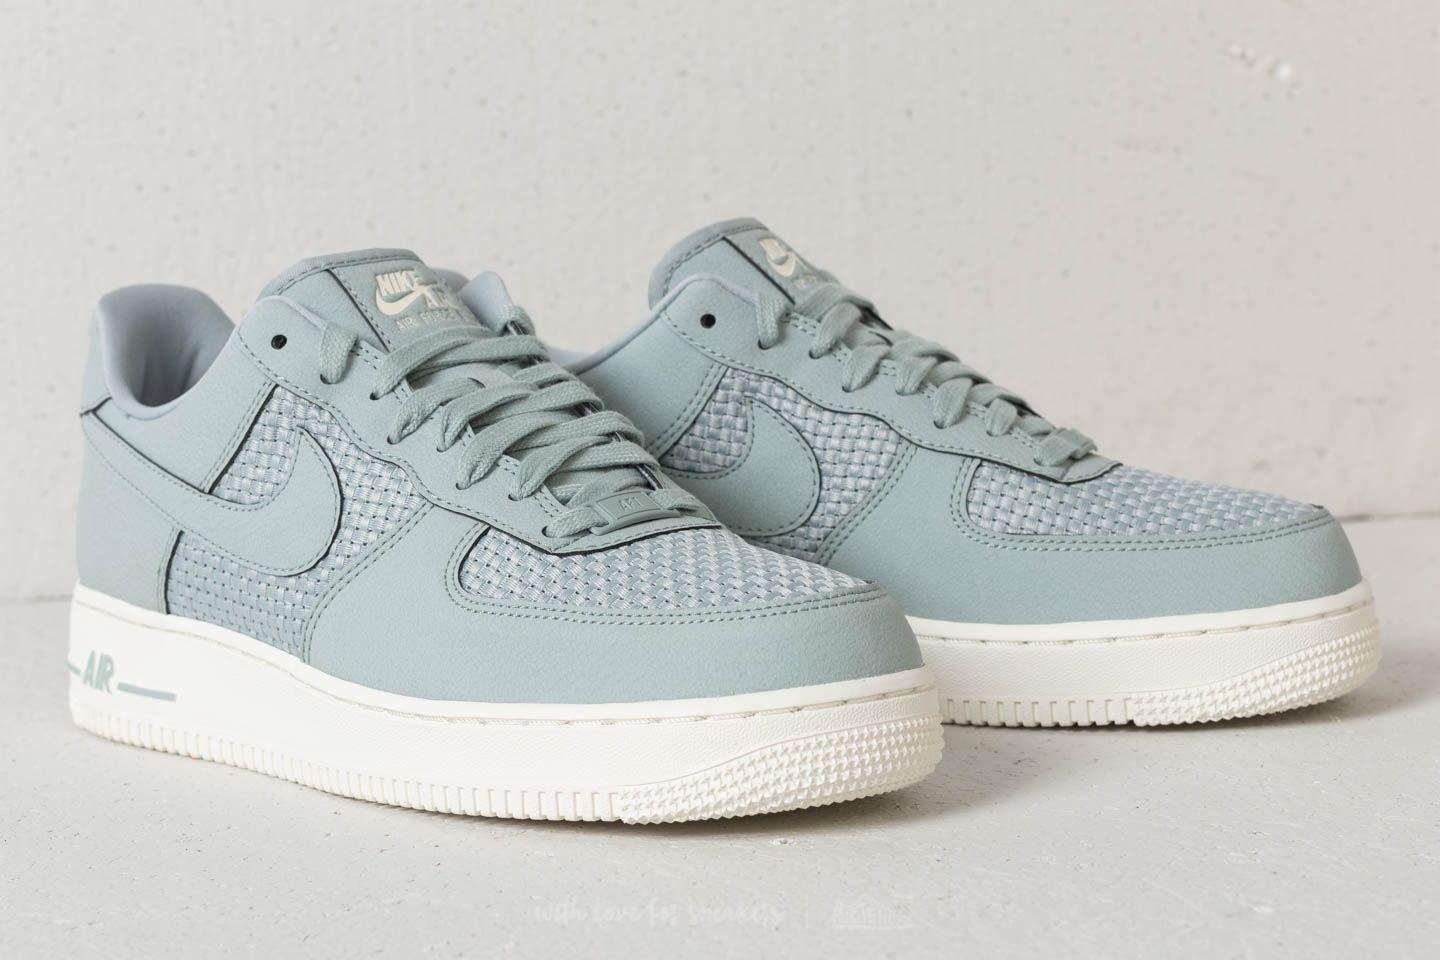 Nike air force baw office Enamel Discount Code For Nike Multicolor Air Force Low Light Pumice Light Pumice Sail For Men Arcadeabitcom Switzerland Nike Air Force Lo Green 0dfdd E91fc